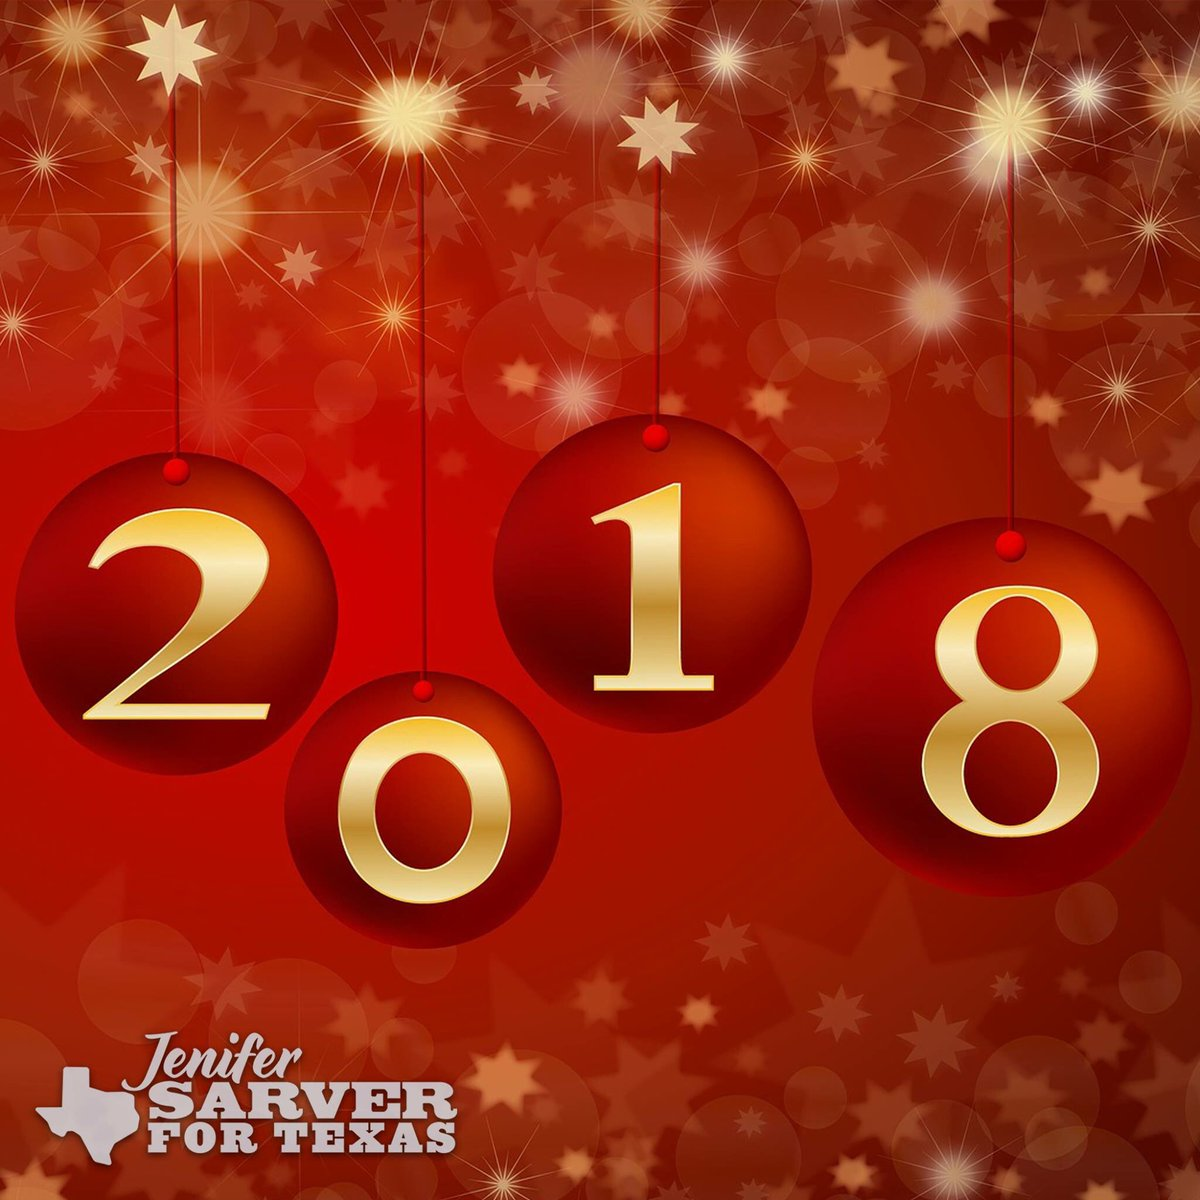 sarver for texas on twitter happy new year ringing in 2018 in the texas hill country stay warm stay safe and may your new year be blessed with love